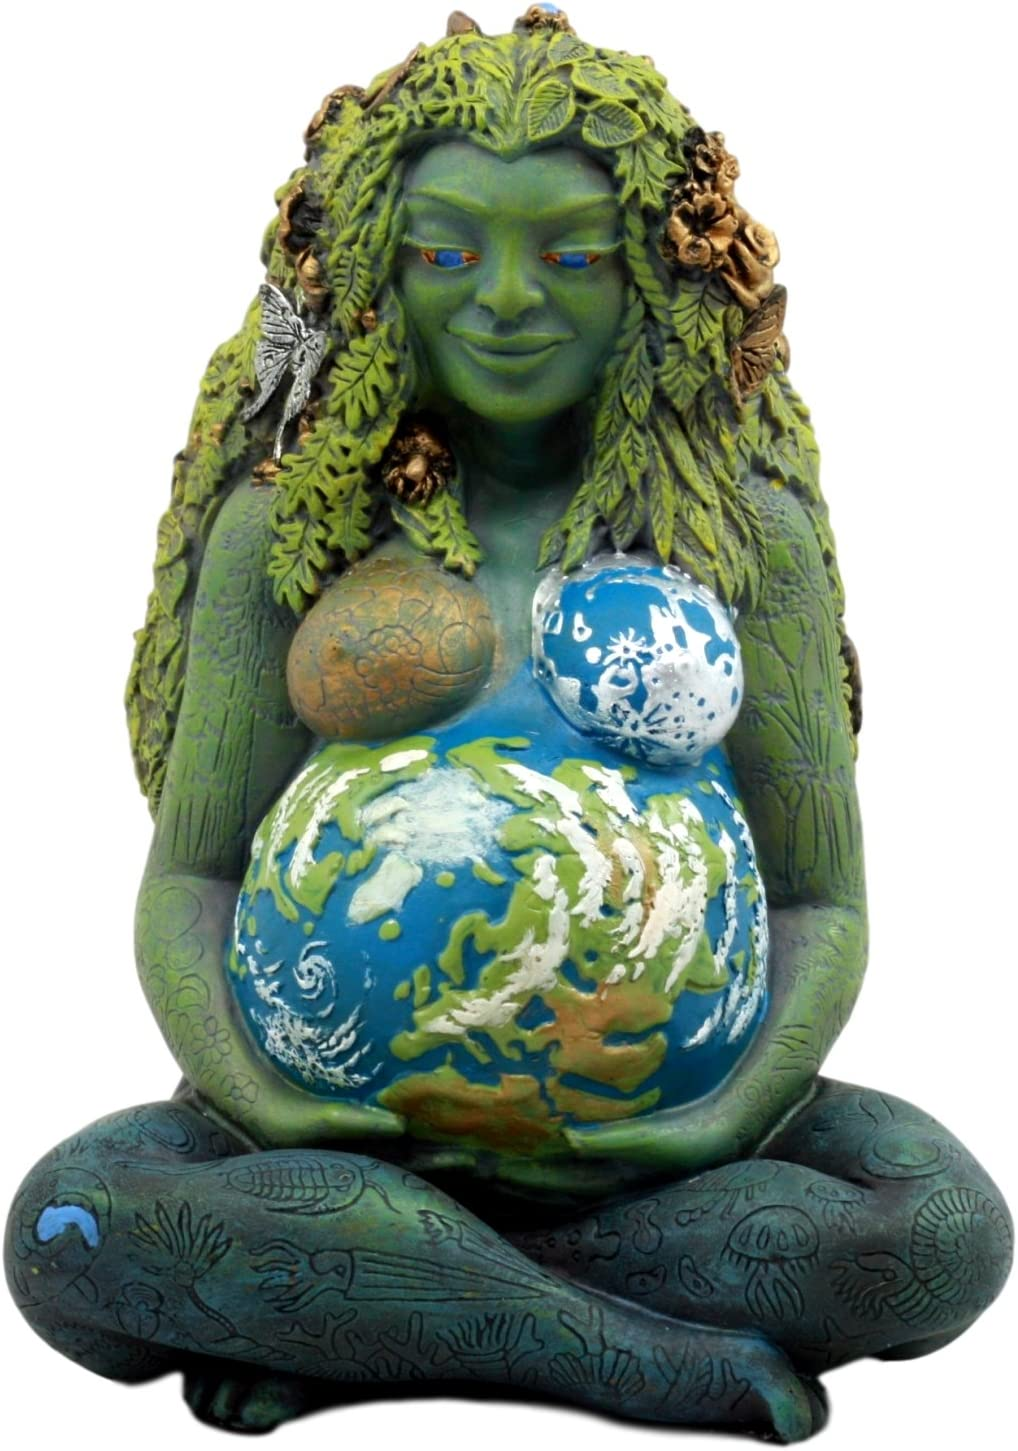 """Ebros Gift Millennial Gaia Earth Mother Goddess Te Fiti Statue 7"""" Tall by Oberon Zell (Earth Green)"""